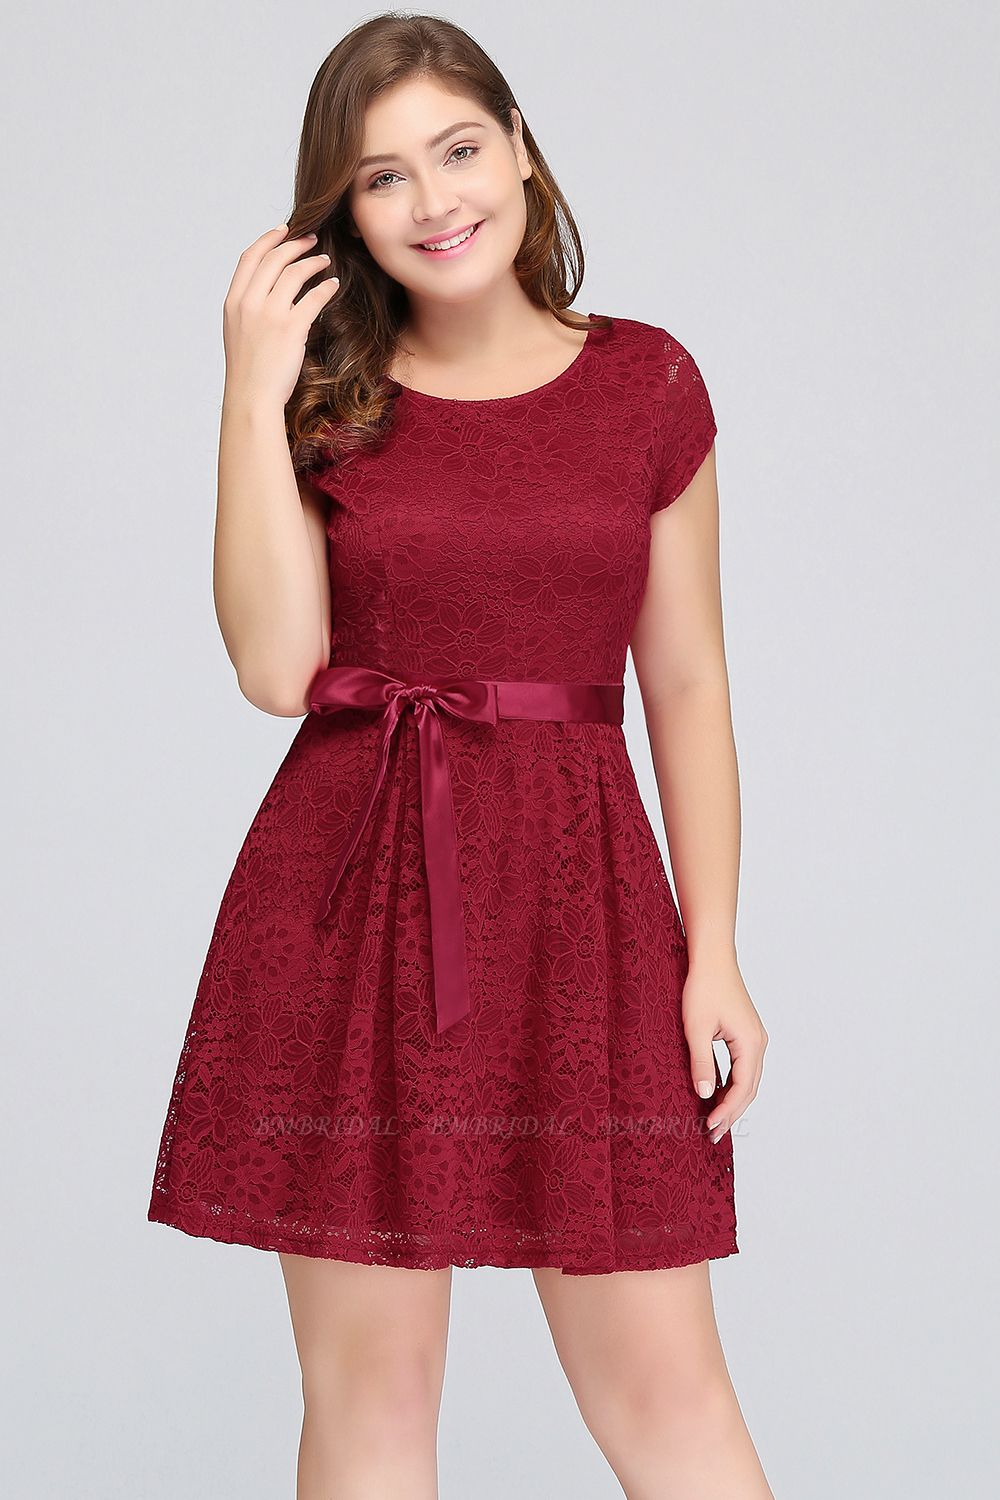 Plus Size A-Line Jewel Burgundy Lace Bridesmaid dress with Short Sleeves